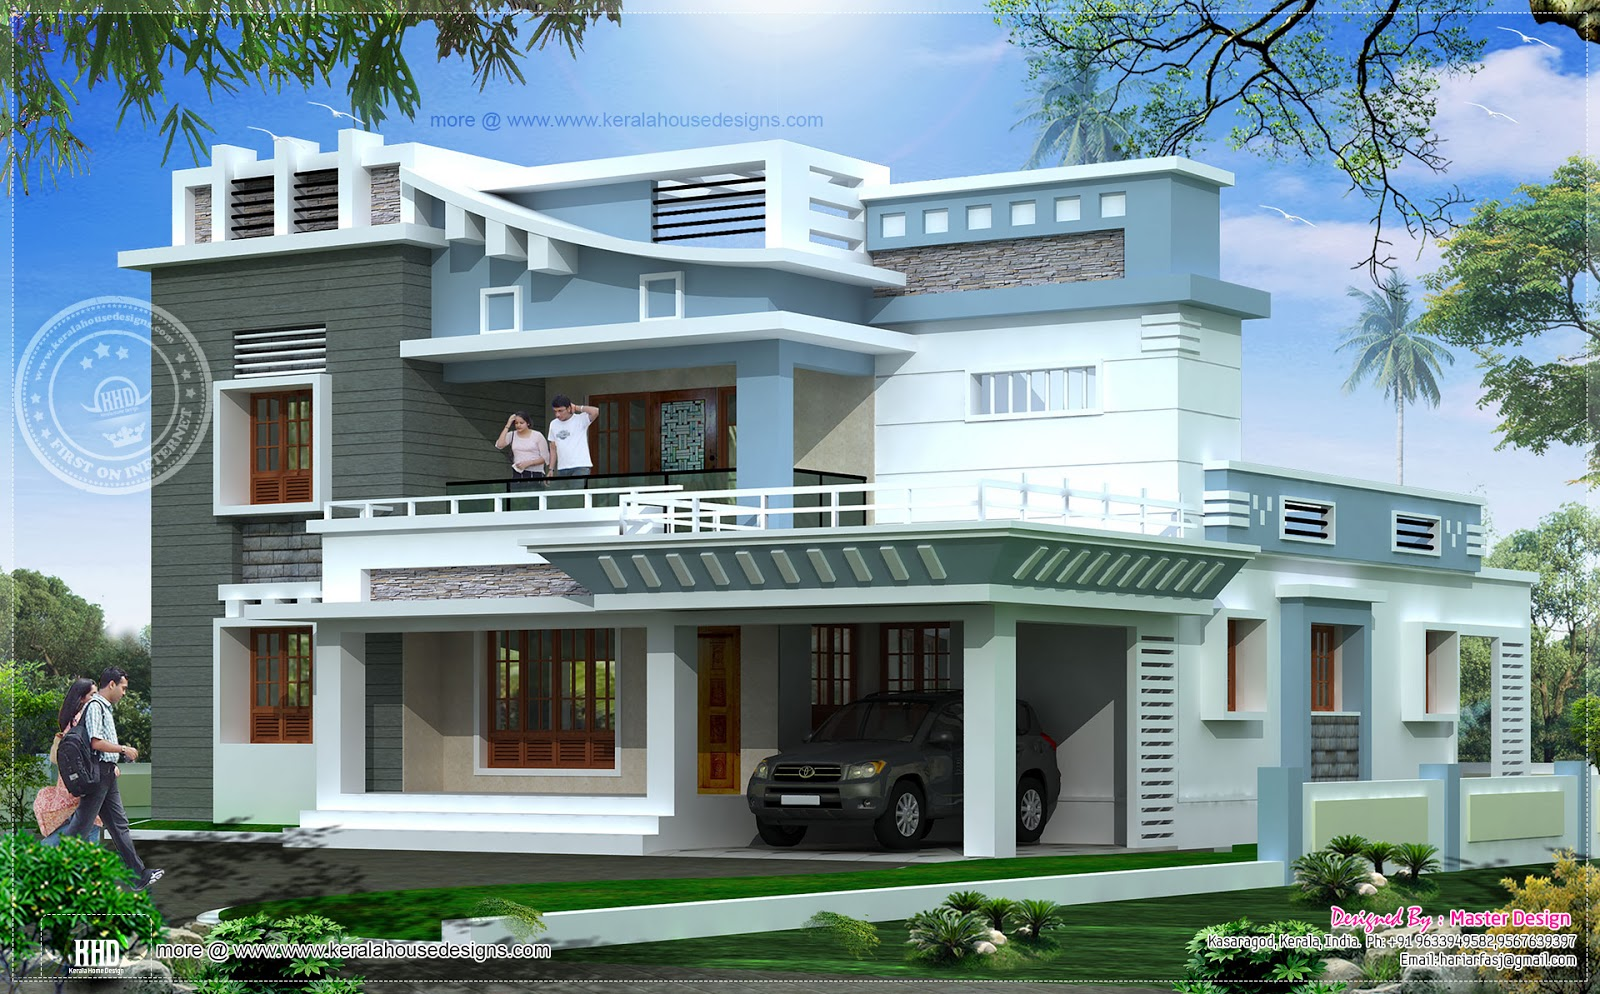 2547 square feet exterior home elevation house design plans for House design outside view